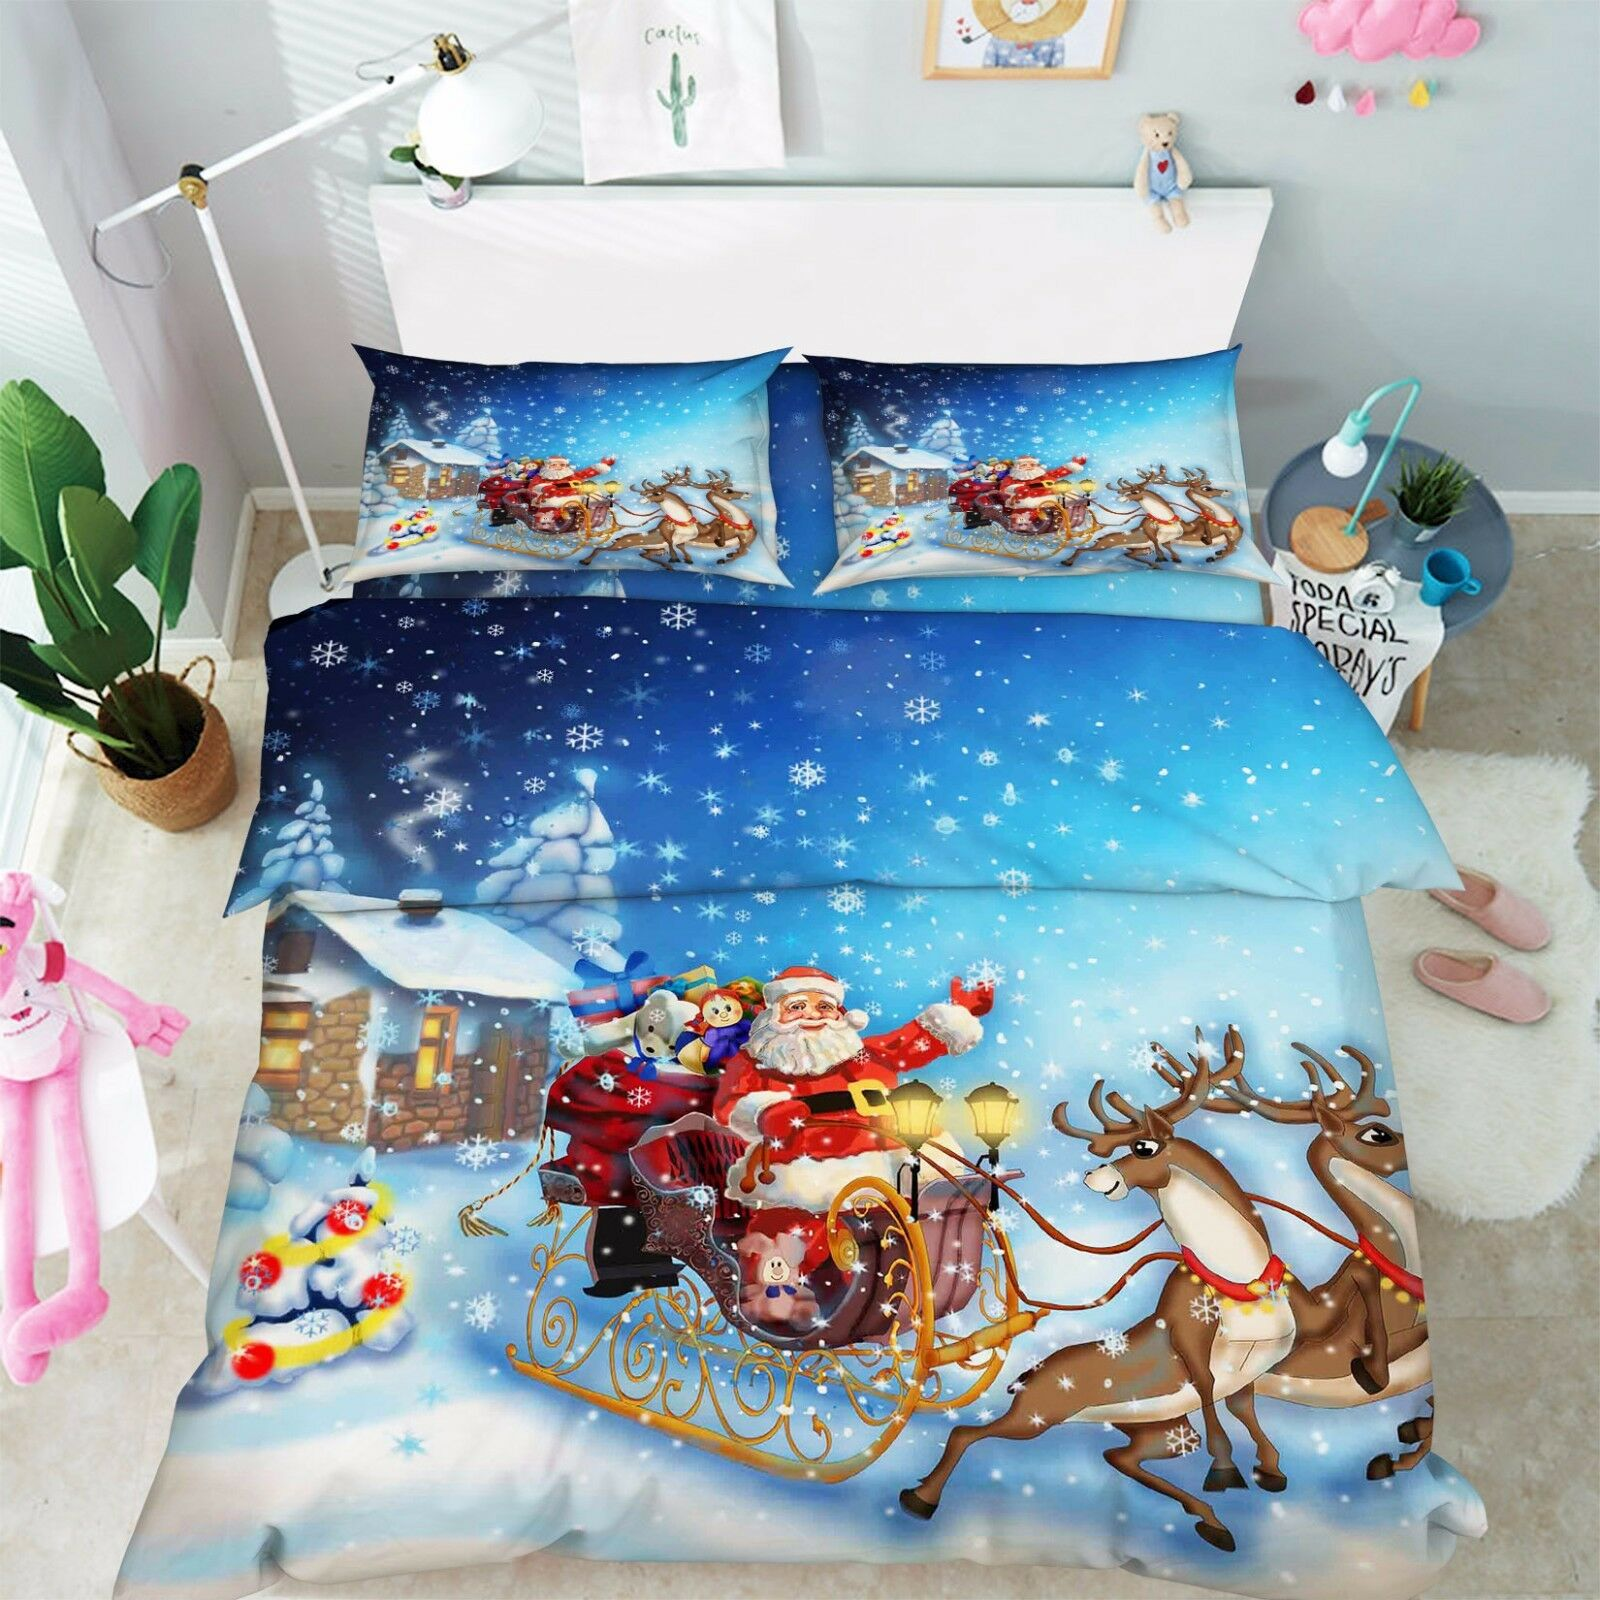 3D Santa Claus 64 Bed Pillowcases Quilt Duvet Cover Set Single Queen King AU